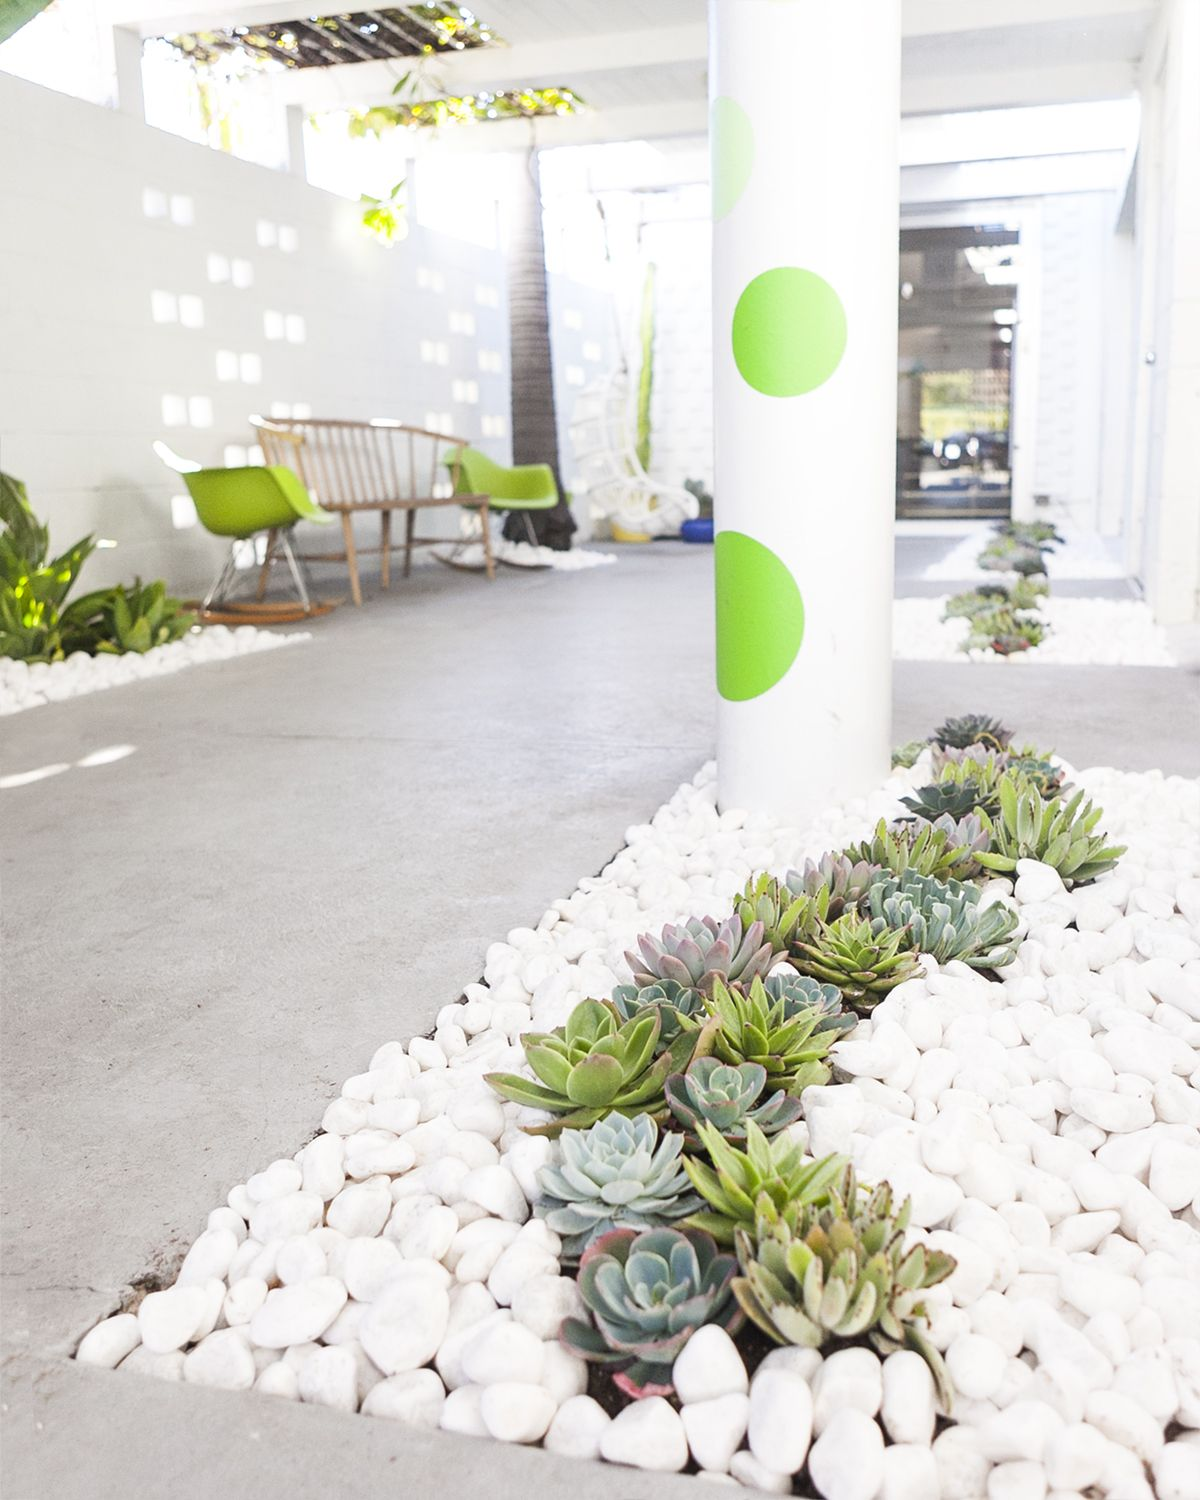 Garden Design Ideas With Pebbles: Growing Succulents Inside And Out